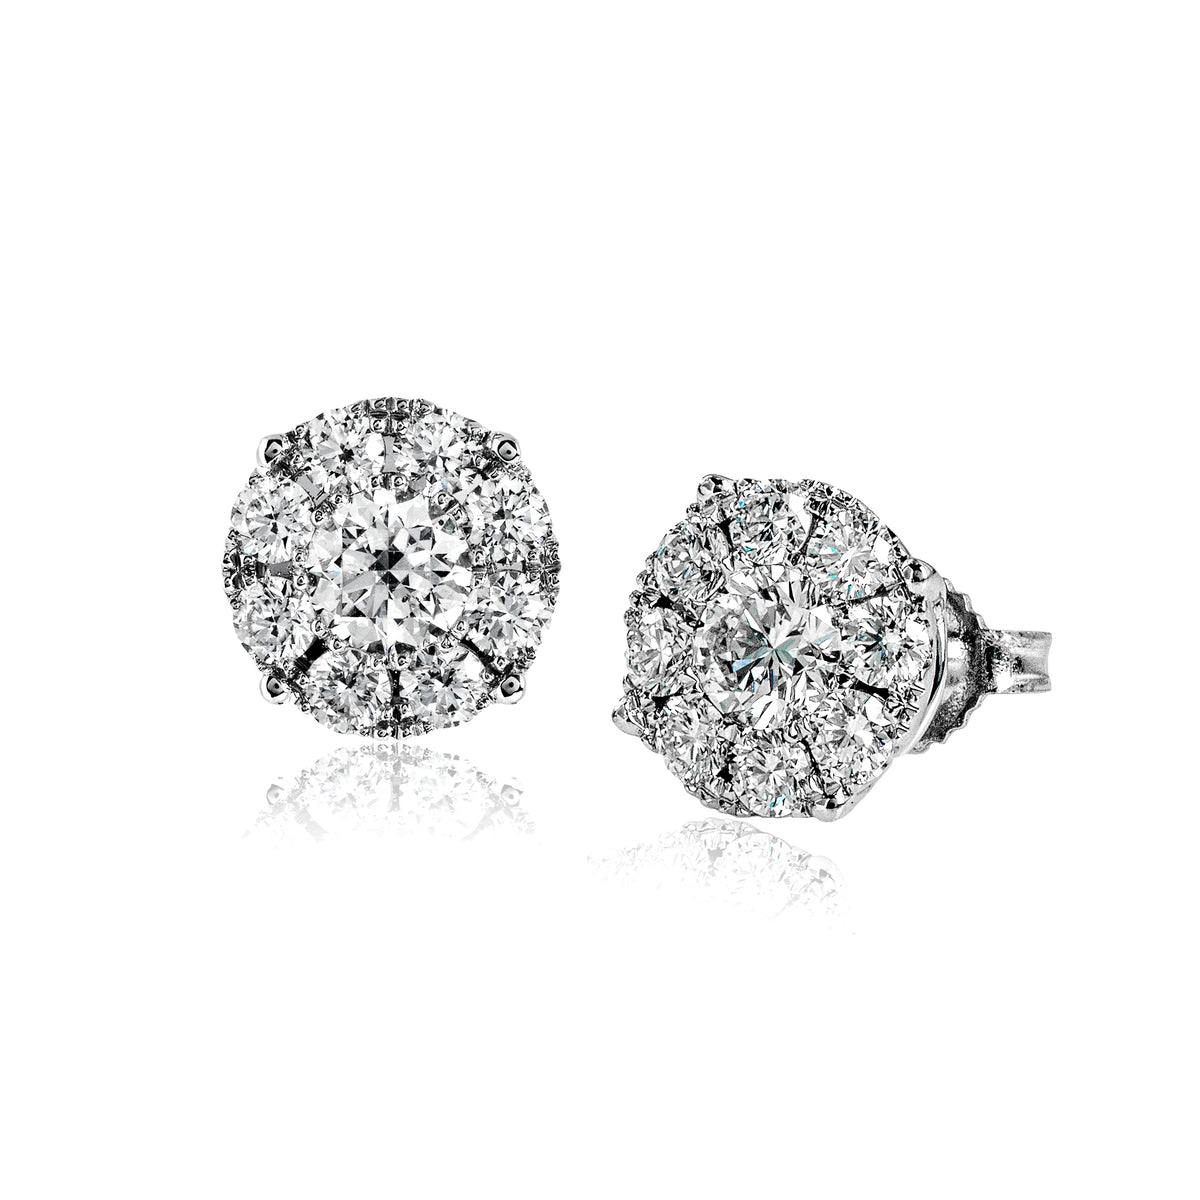 Simon G 18K White Gold Diamond Cluster Earrings